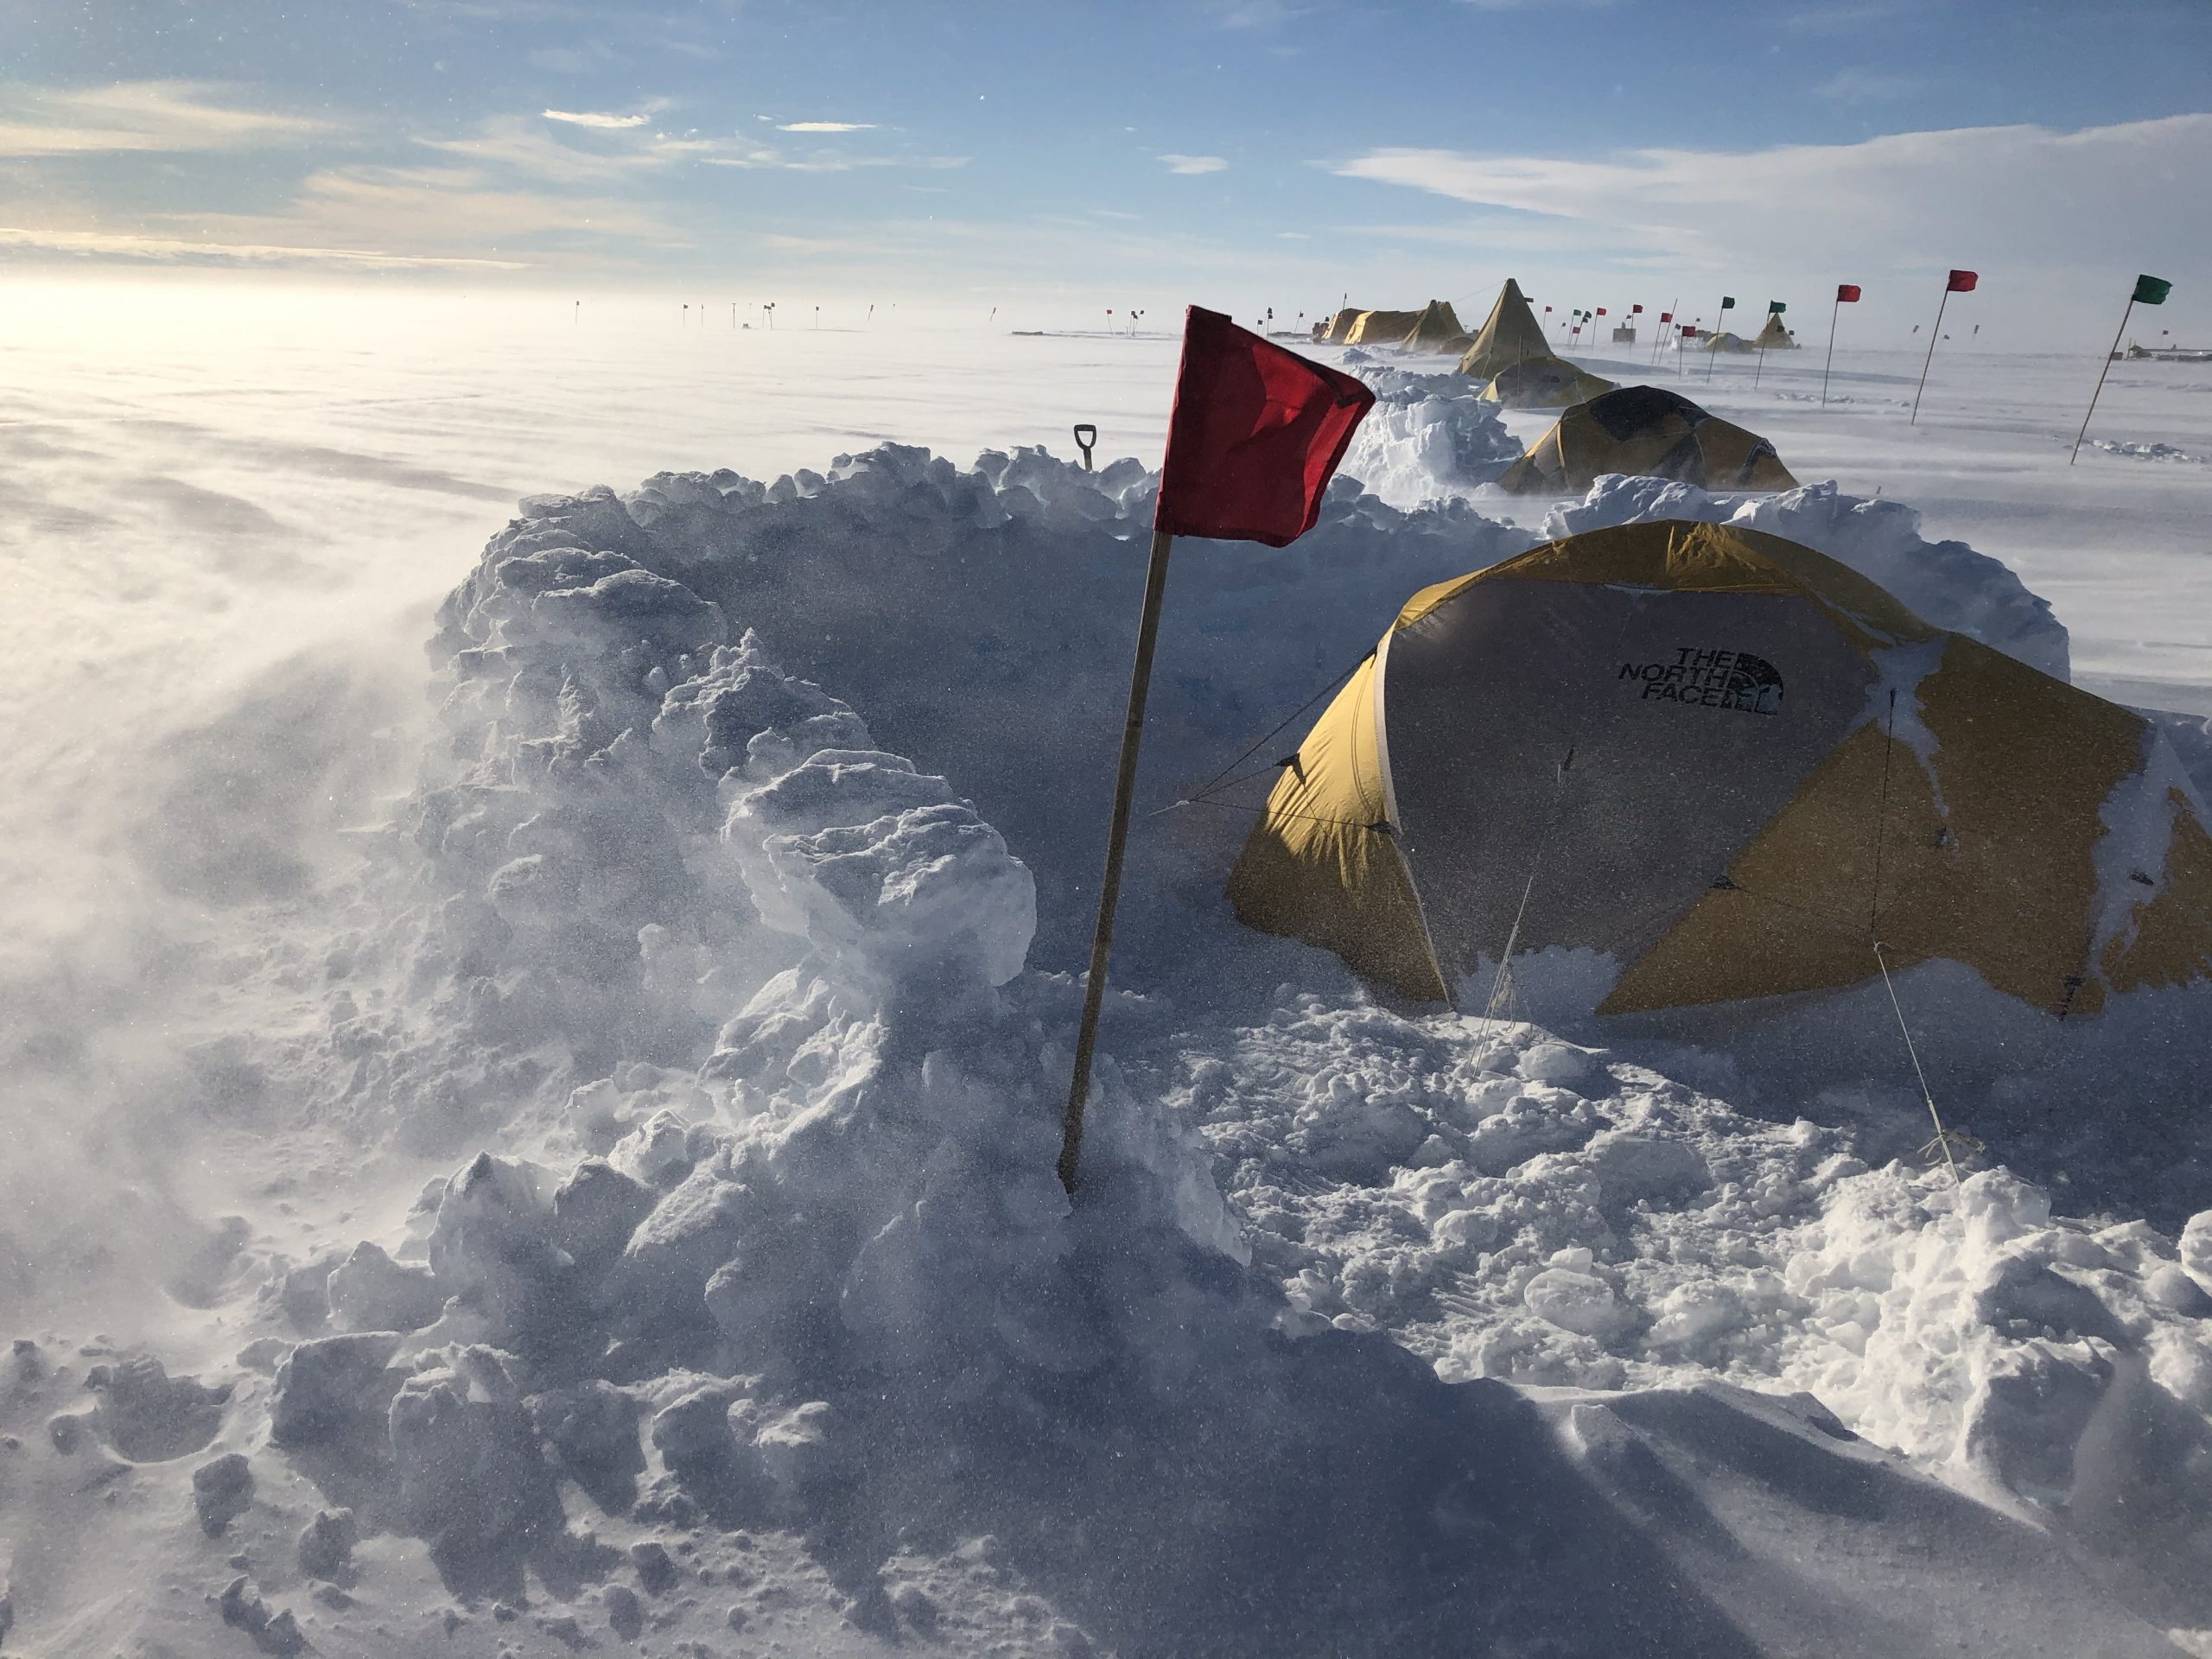 The research team used walls built from snow blocks to protect tents from wind storms on Antarctica's Thwaites Ice Shelf. In order to sleep, one must acclimate to intense 24-hour daylight and the constant din of the flapping tent. Photograph by Douglas Fox